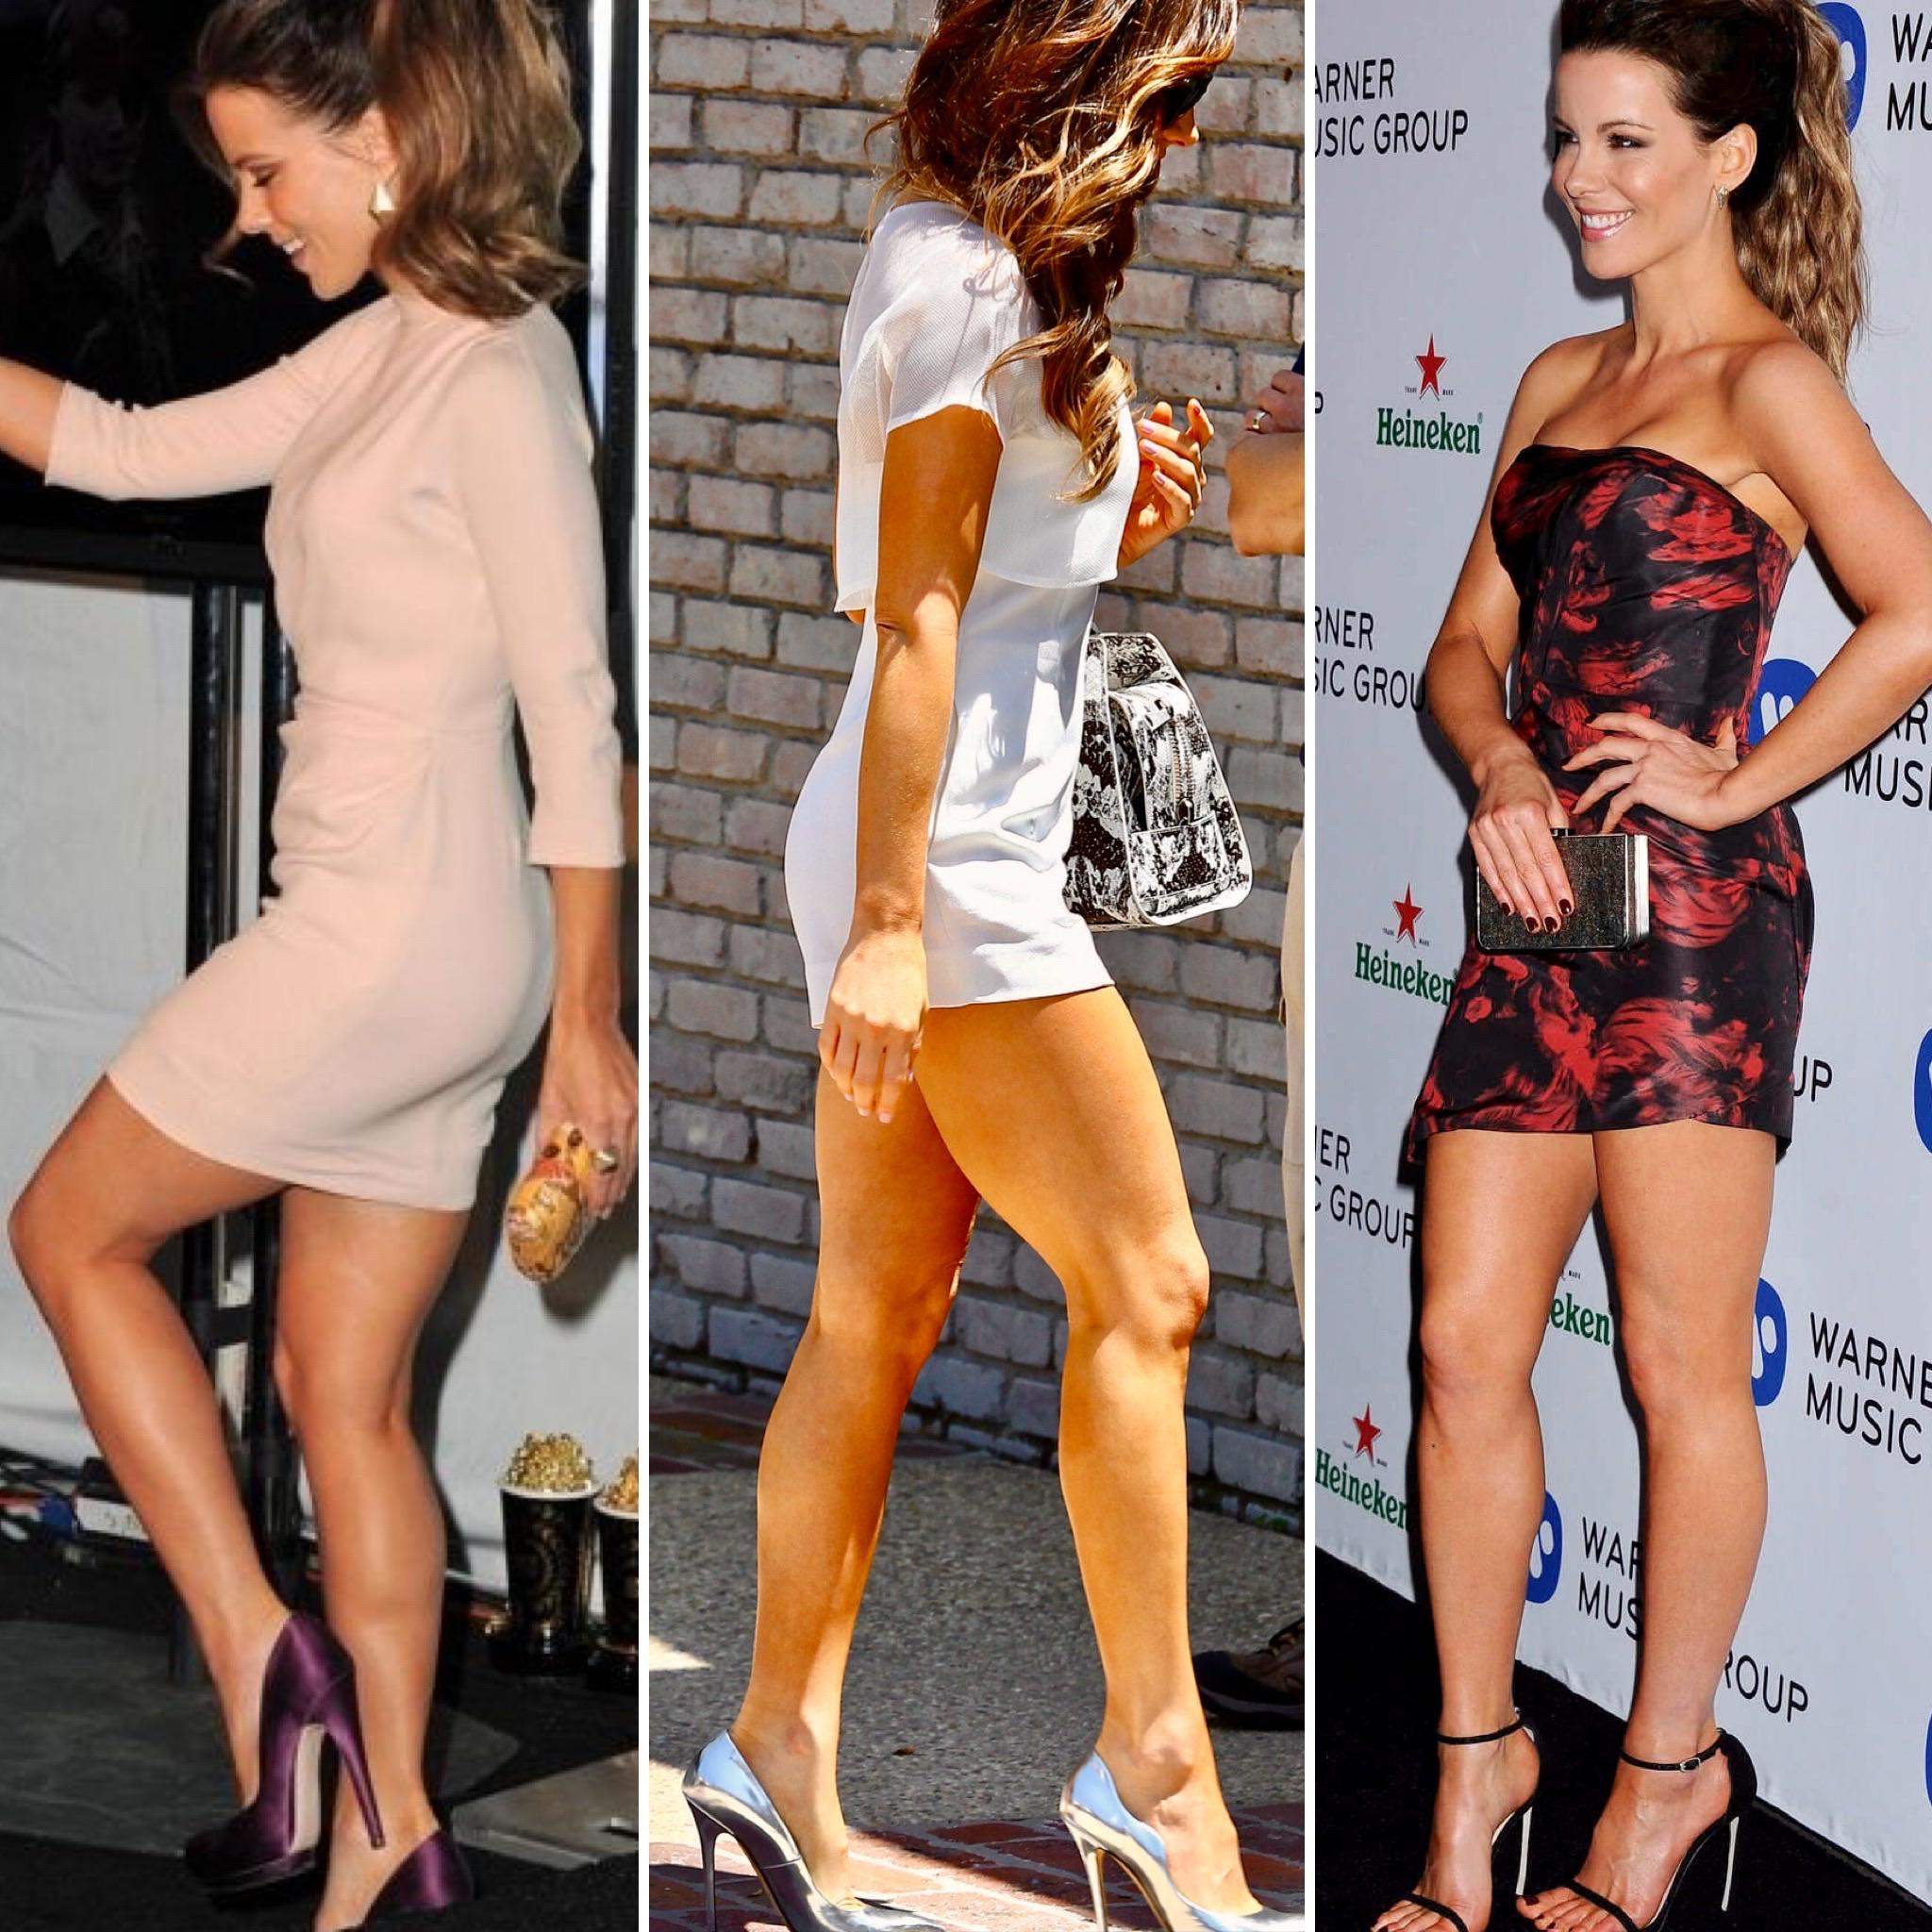 Kate Beckinsale Amazing Legs in Explicate T-Shirt On Instagram!